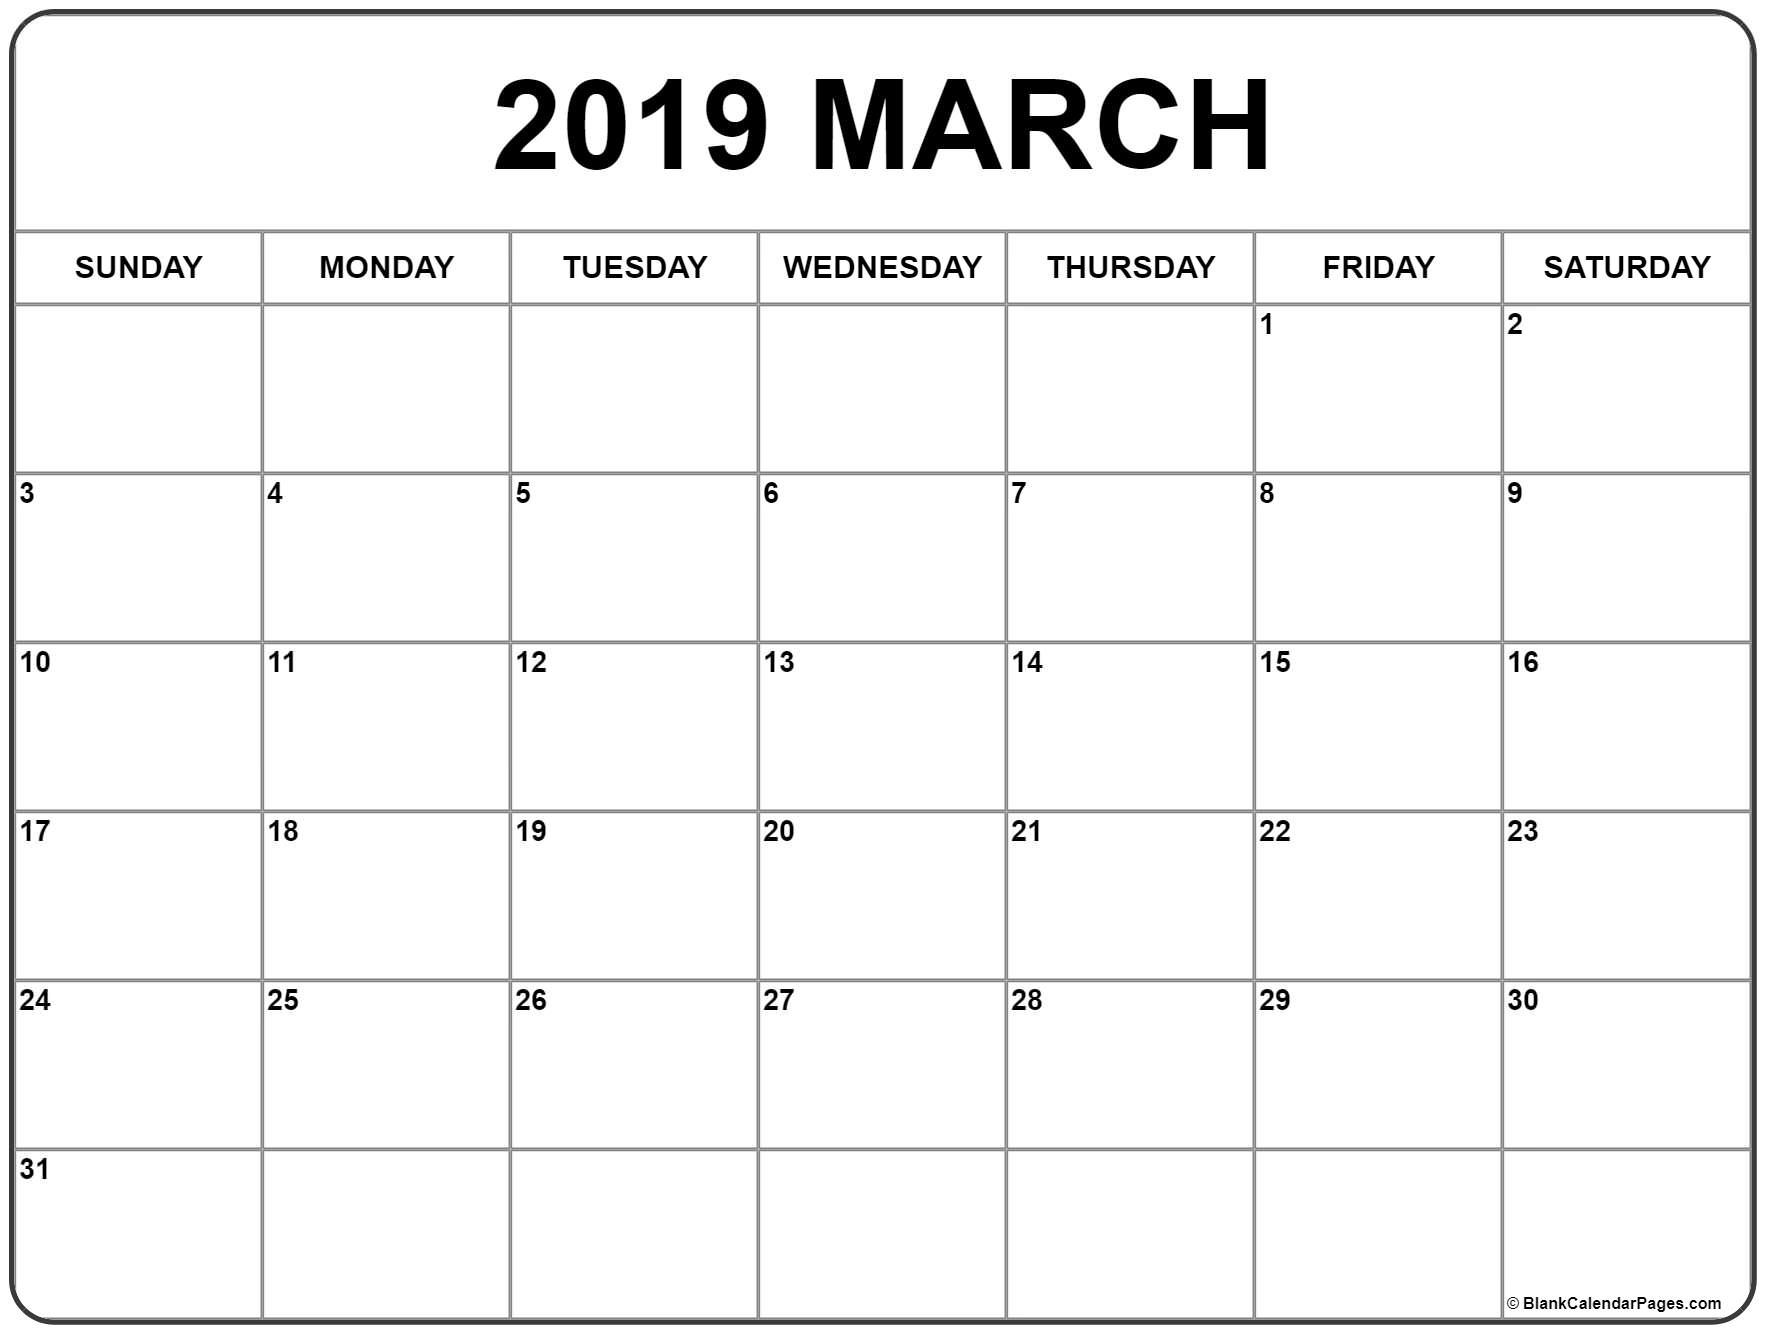 March 2019 Calendar 56 Templates Of 2019 Printable Calendars